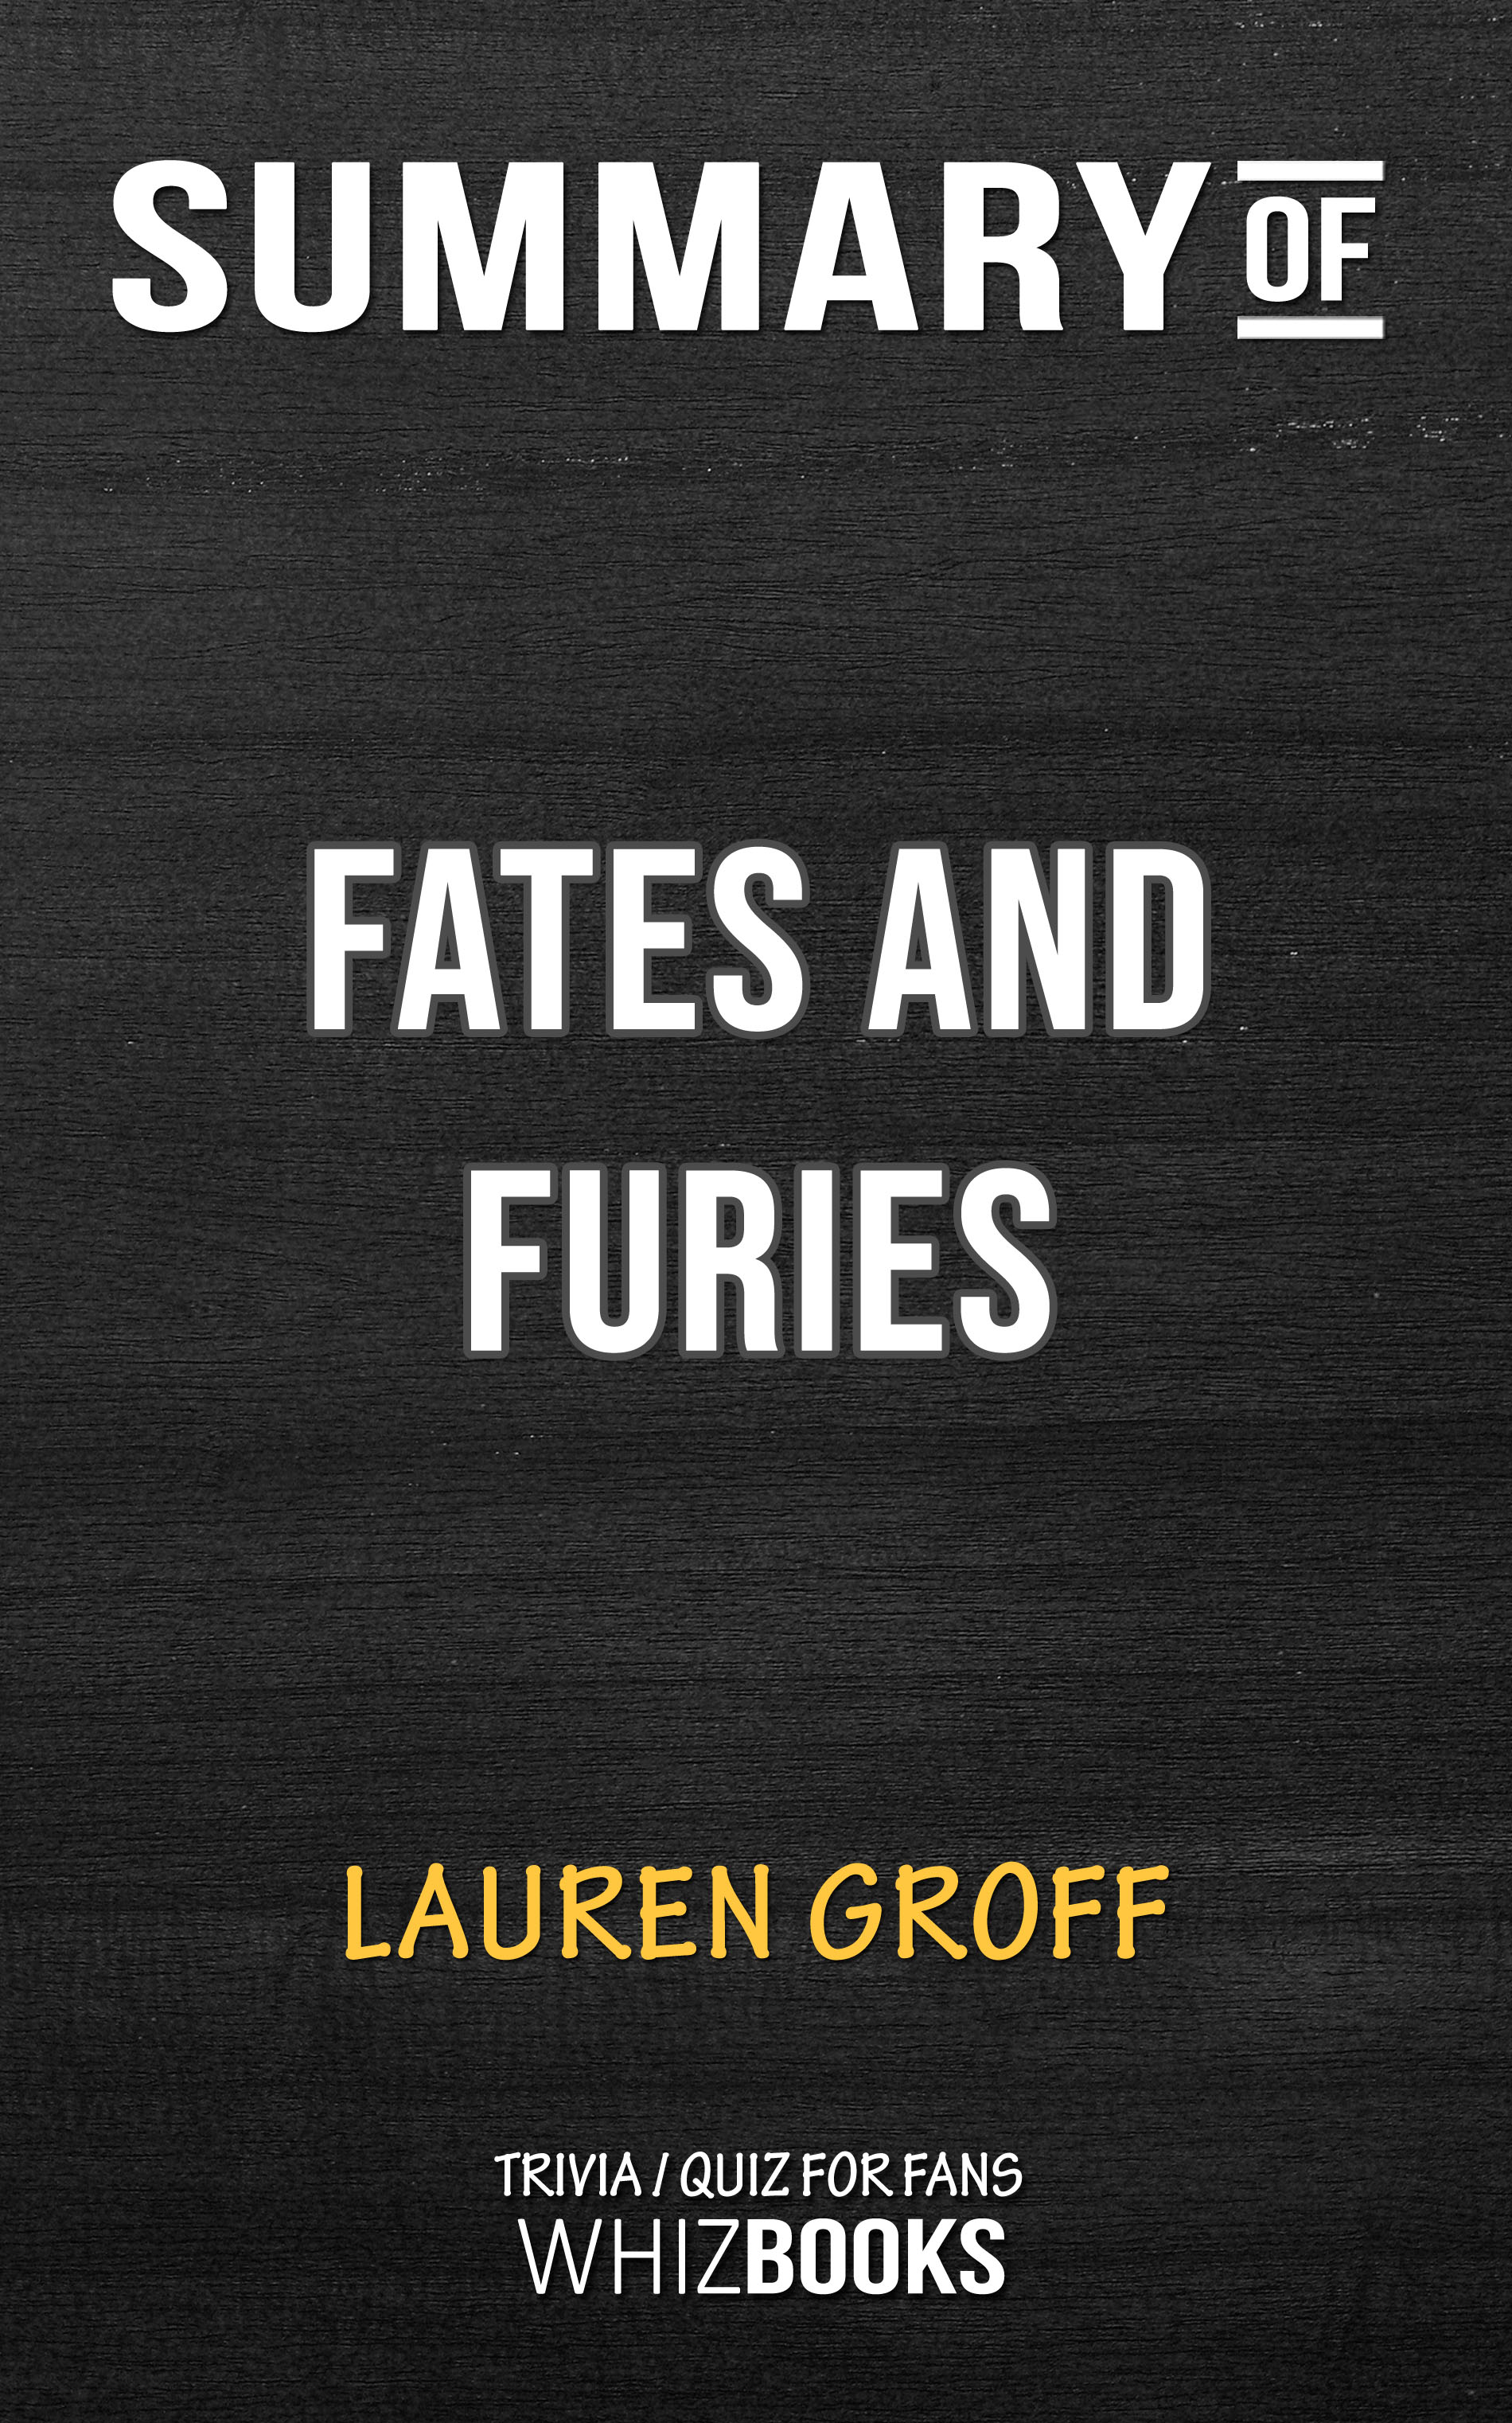 Summary Of Fates And Furies A Novel By Lauren Groff Trivia Quiz For Fans An Ebook By Whiz Books